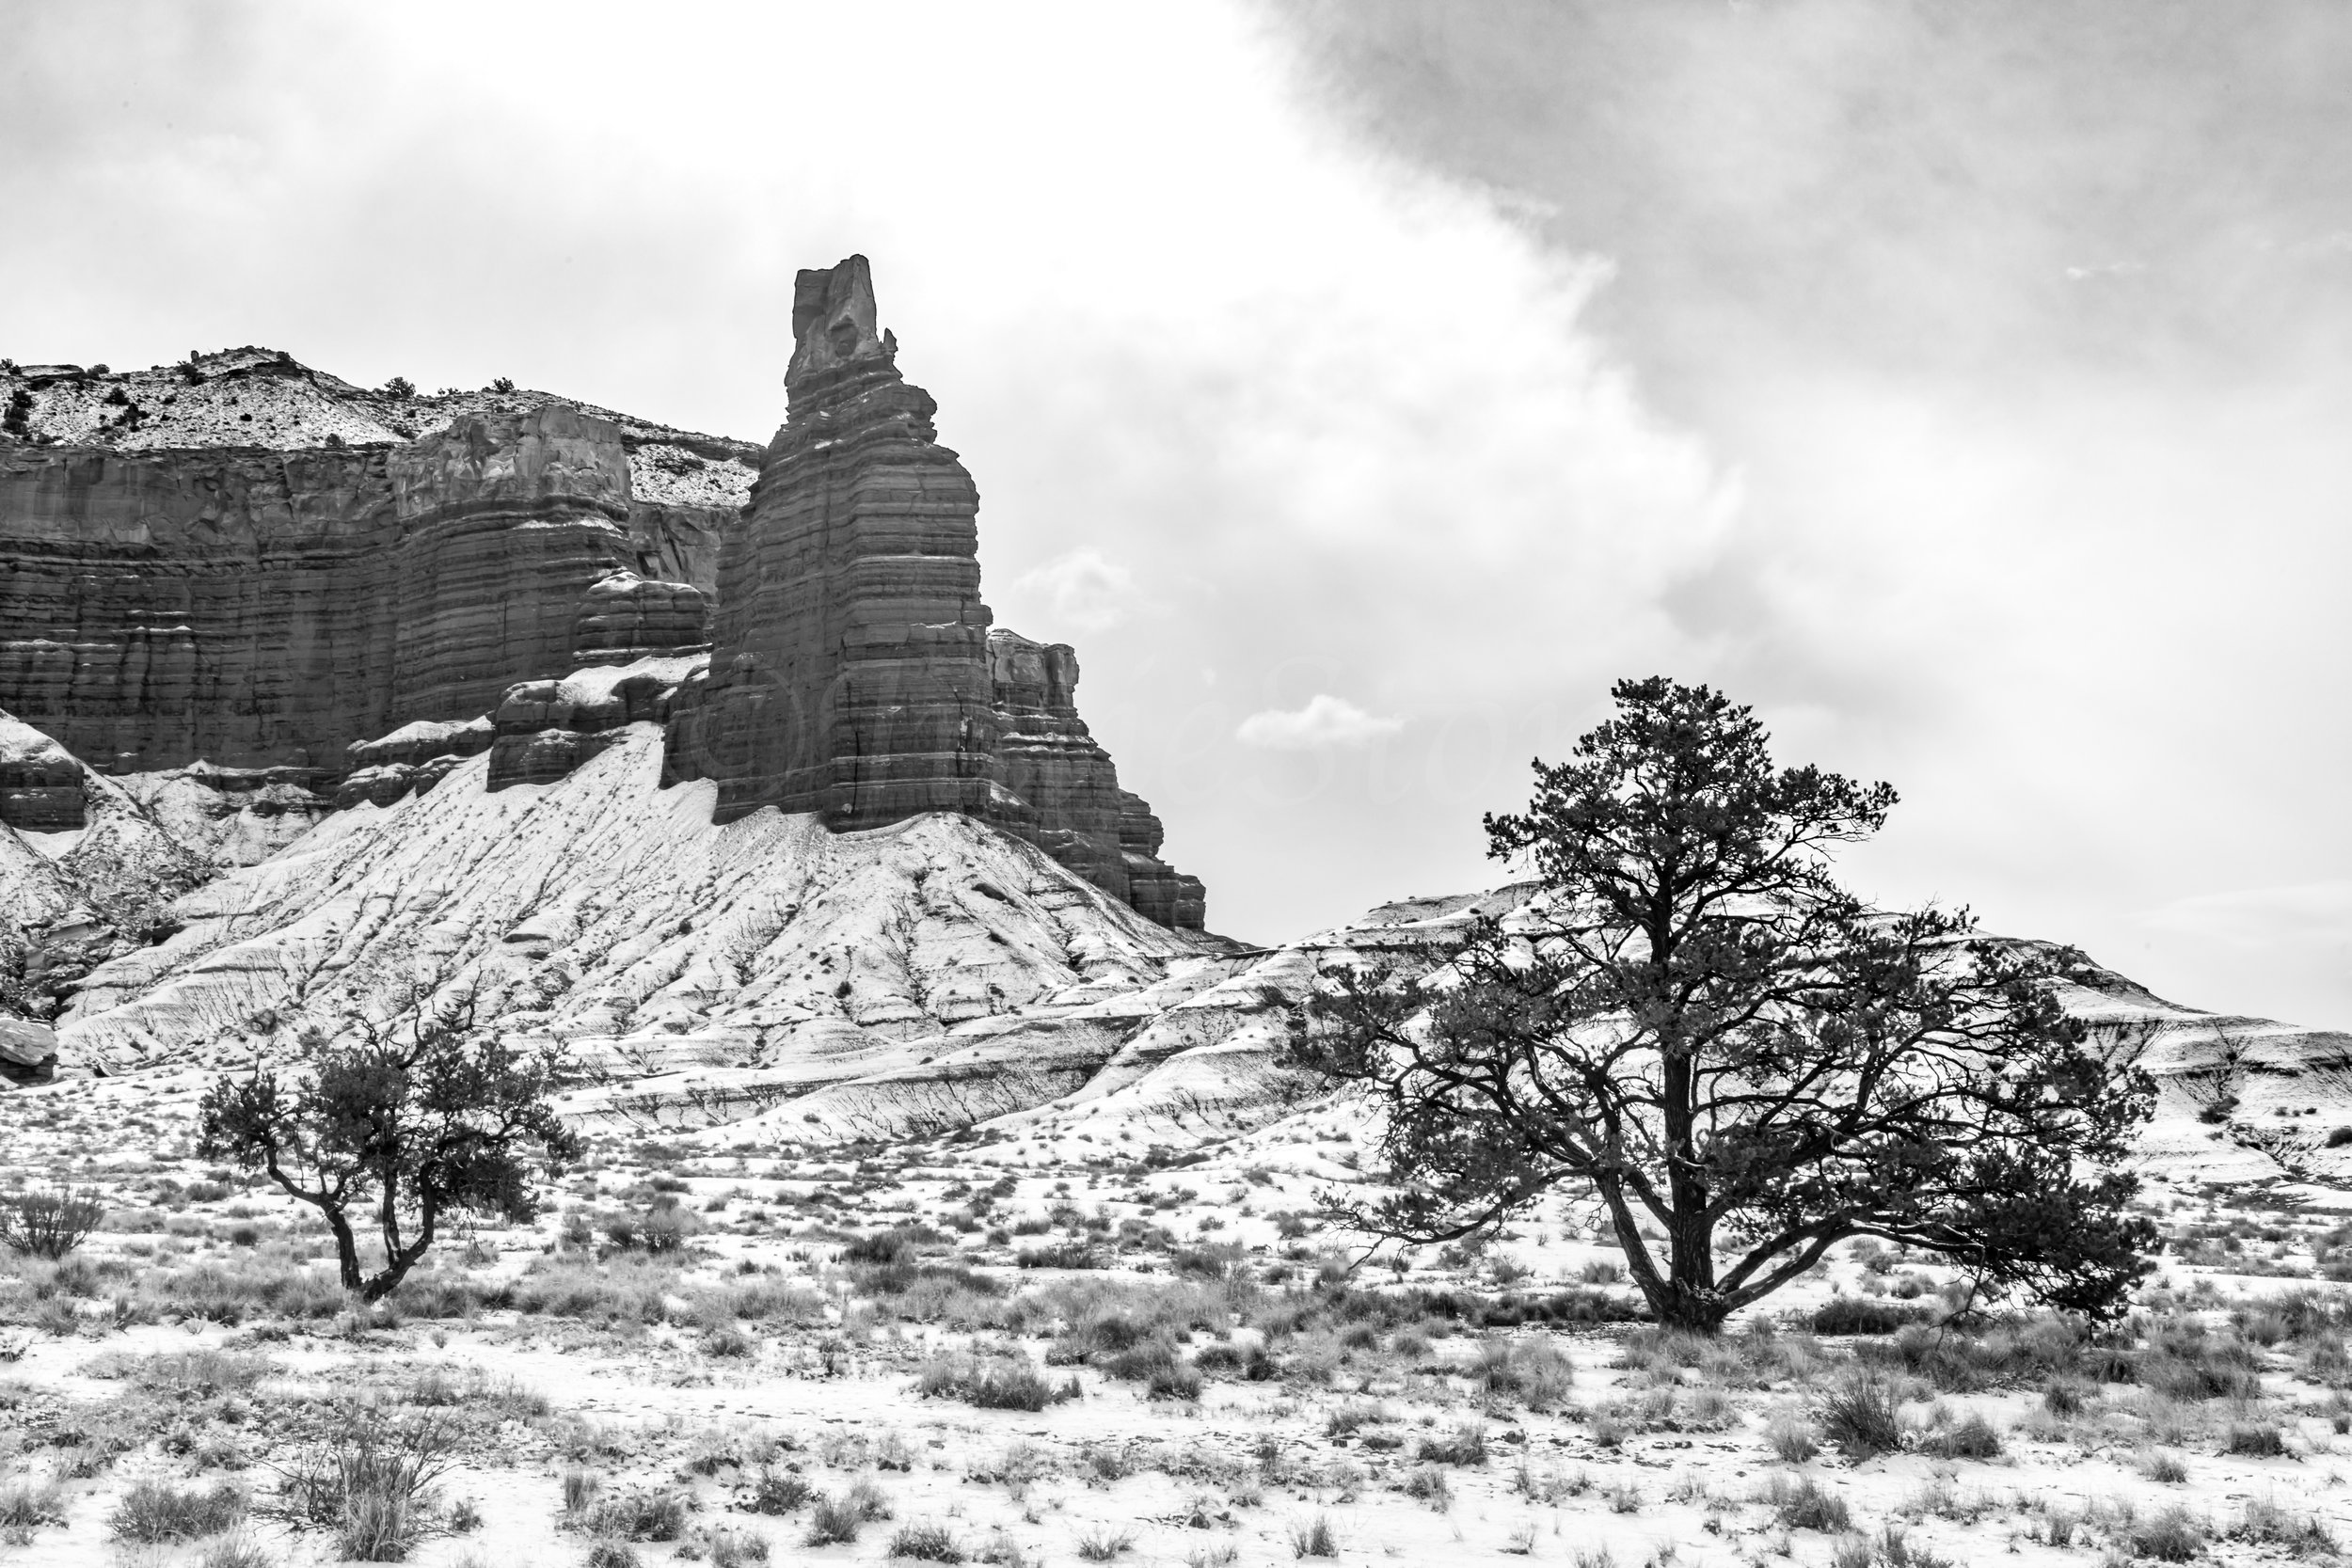 Capitol Reef National Park, Image # 2442